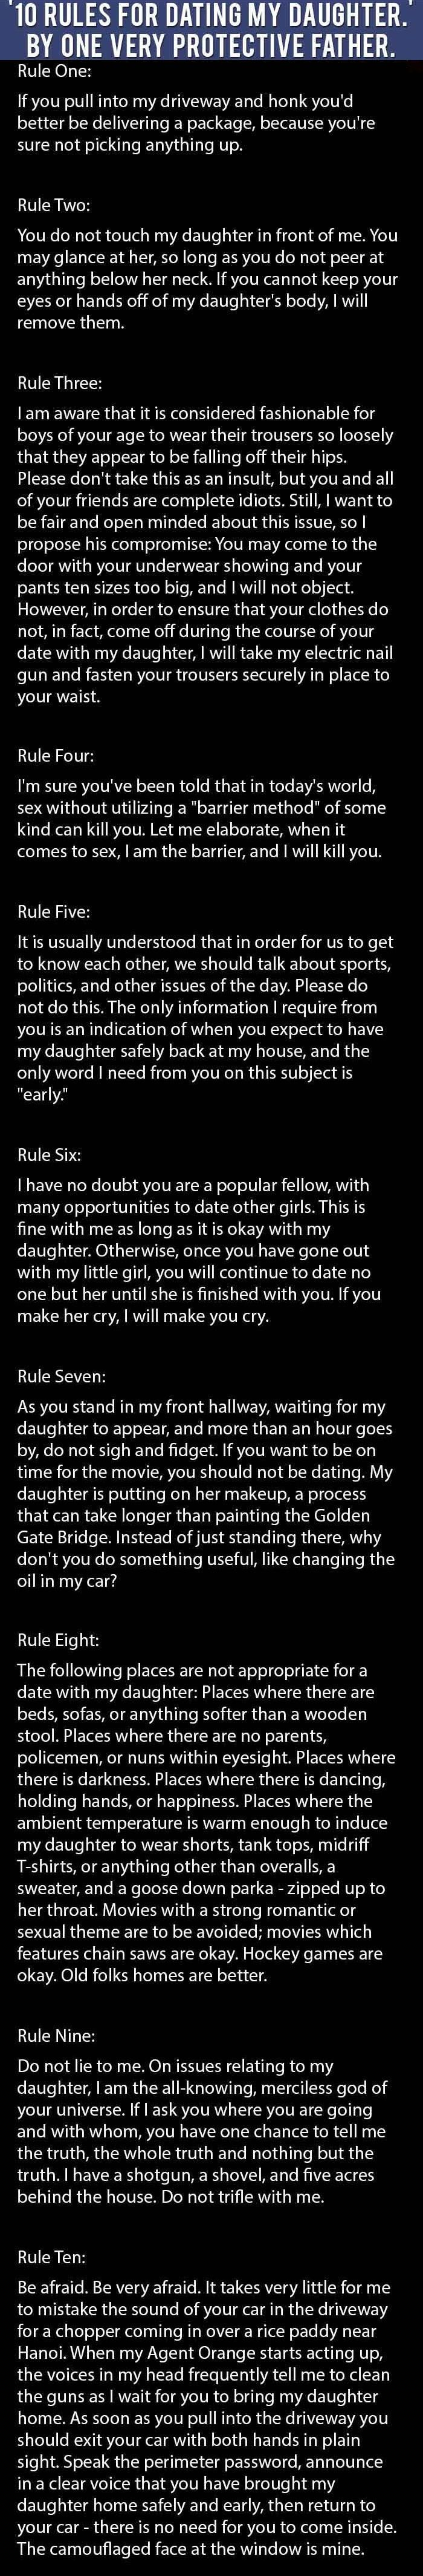 Rules for Dating my Daughter(joke)